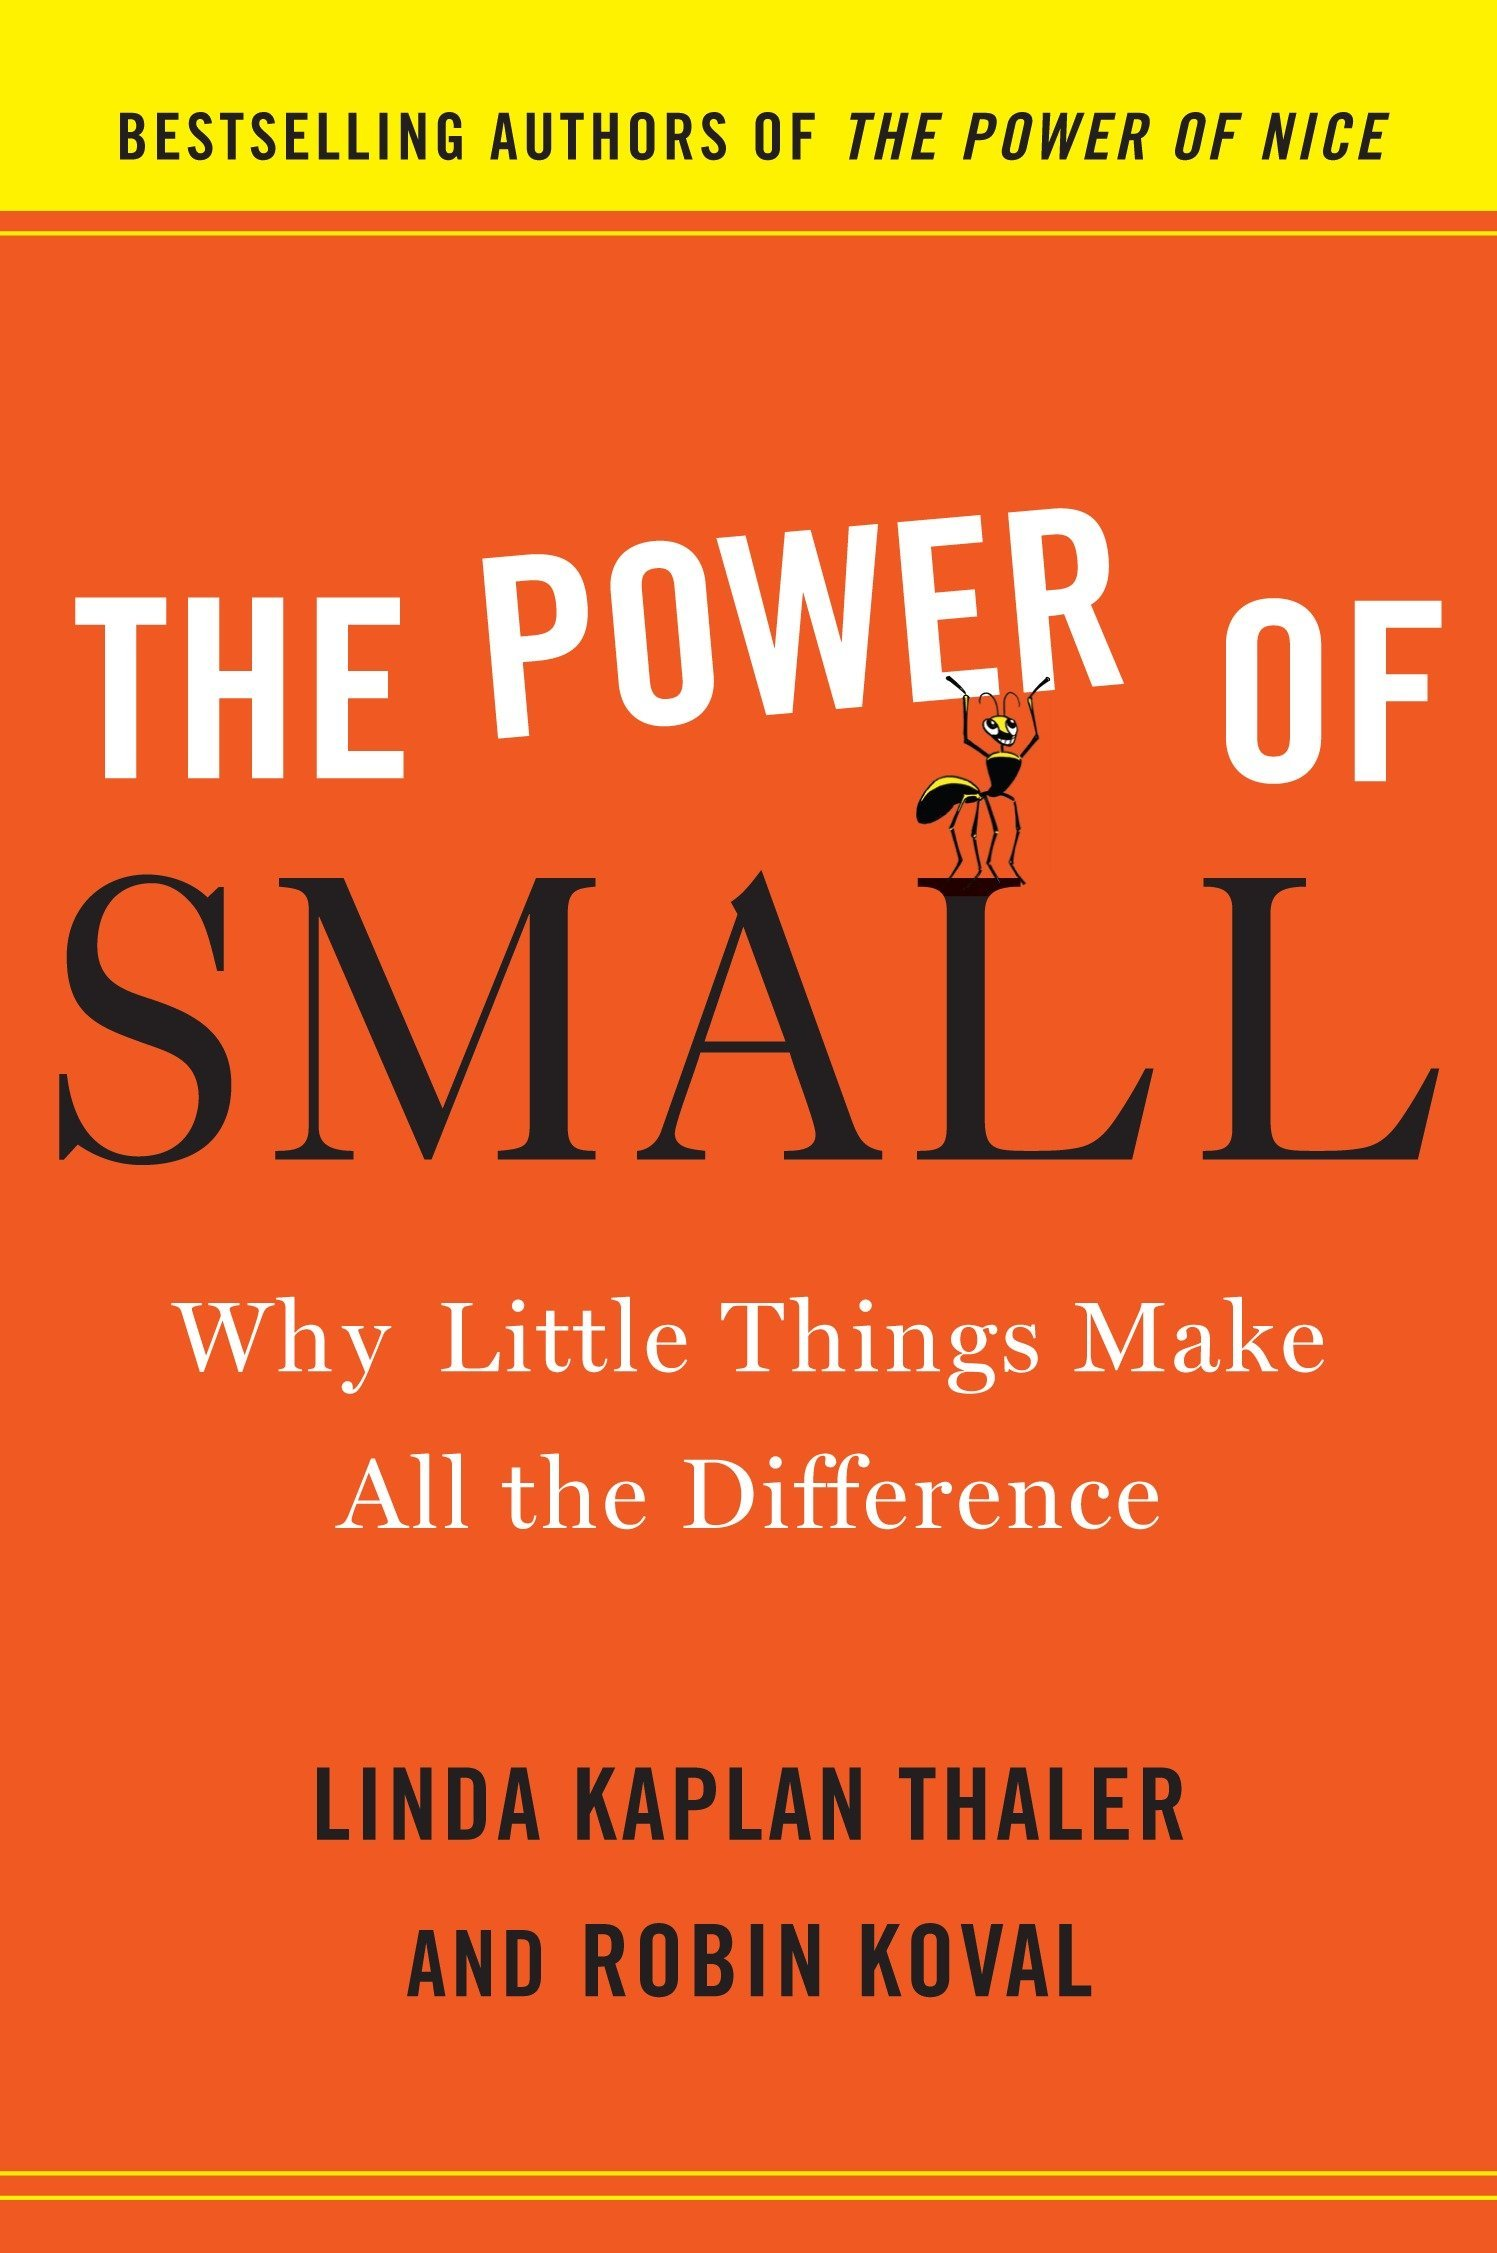 The Power Of Small Why Little Things Make All The Difference Amazon Co Uk Kaplan Thaler Linda 9780385526555 Books